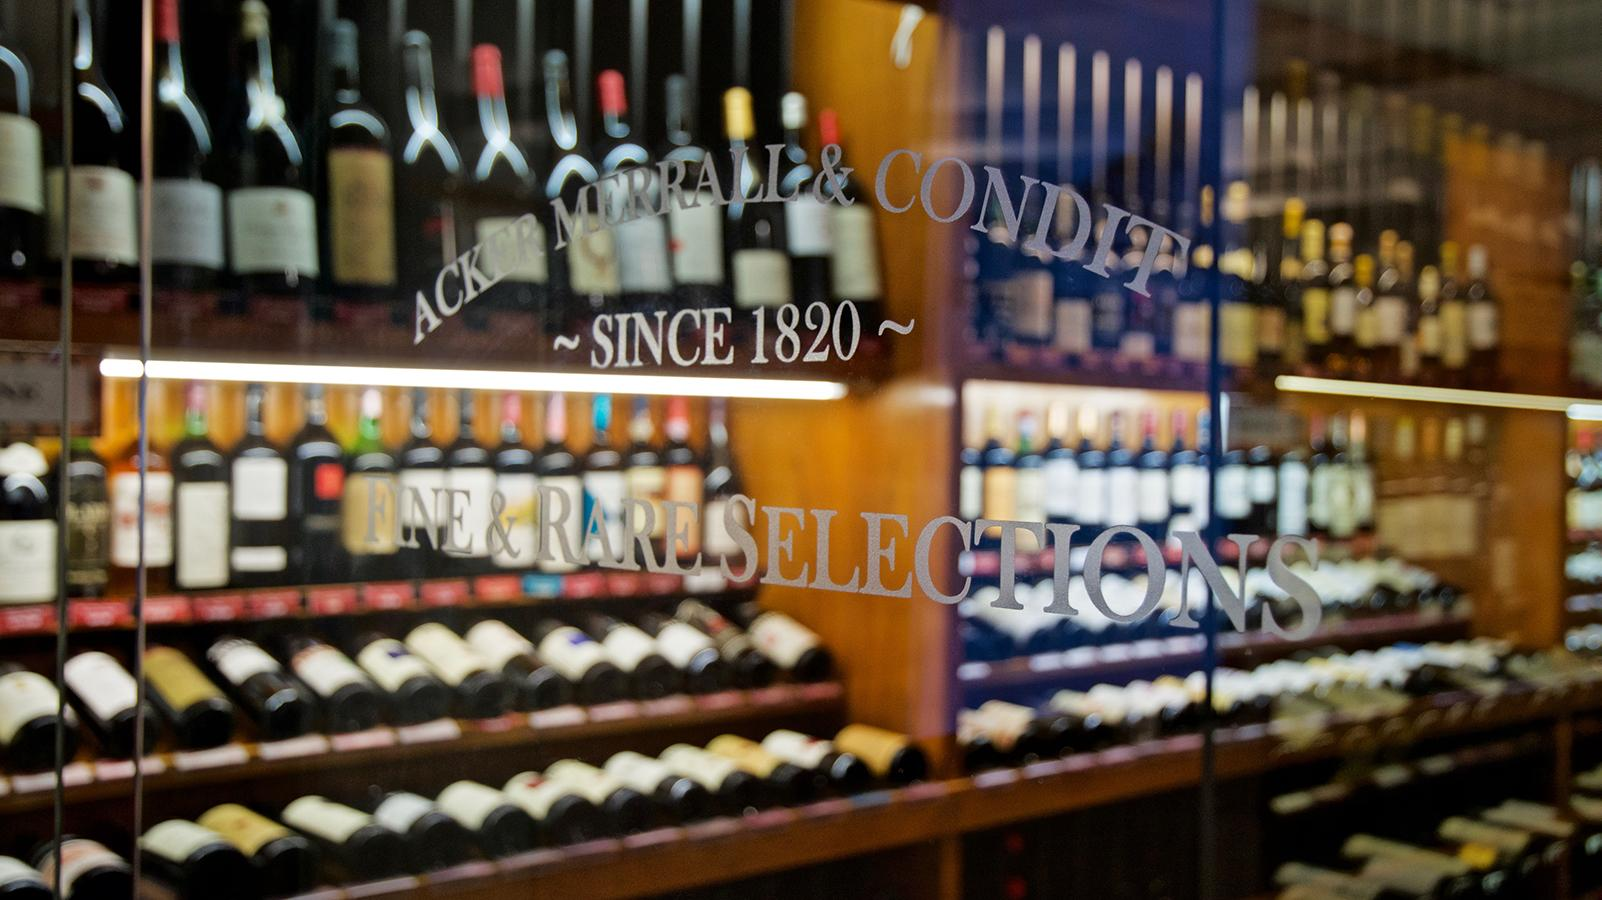 Auction Houses Shift Online but See Continued Demand for Collectible Wines